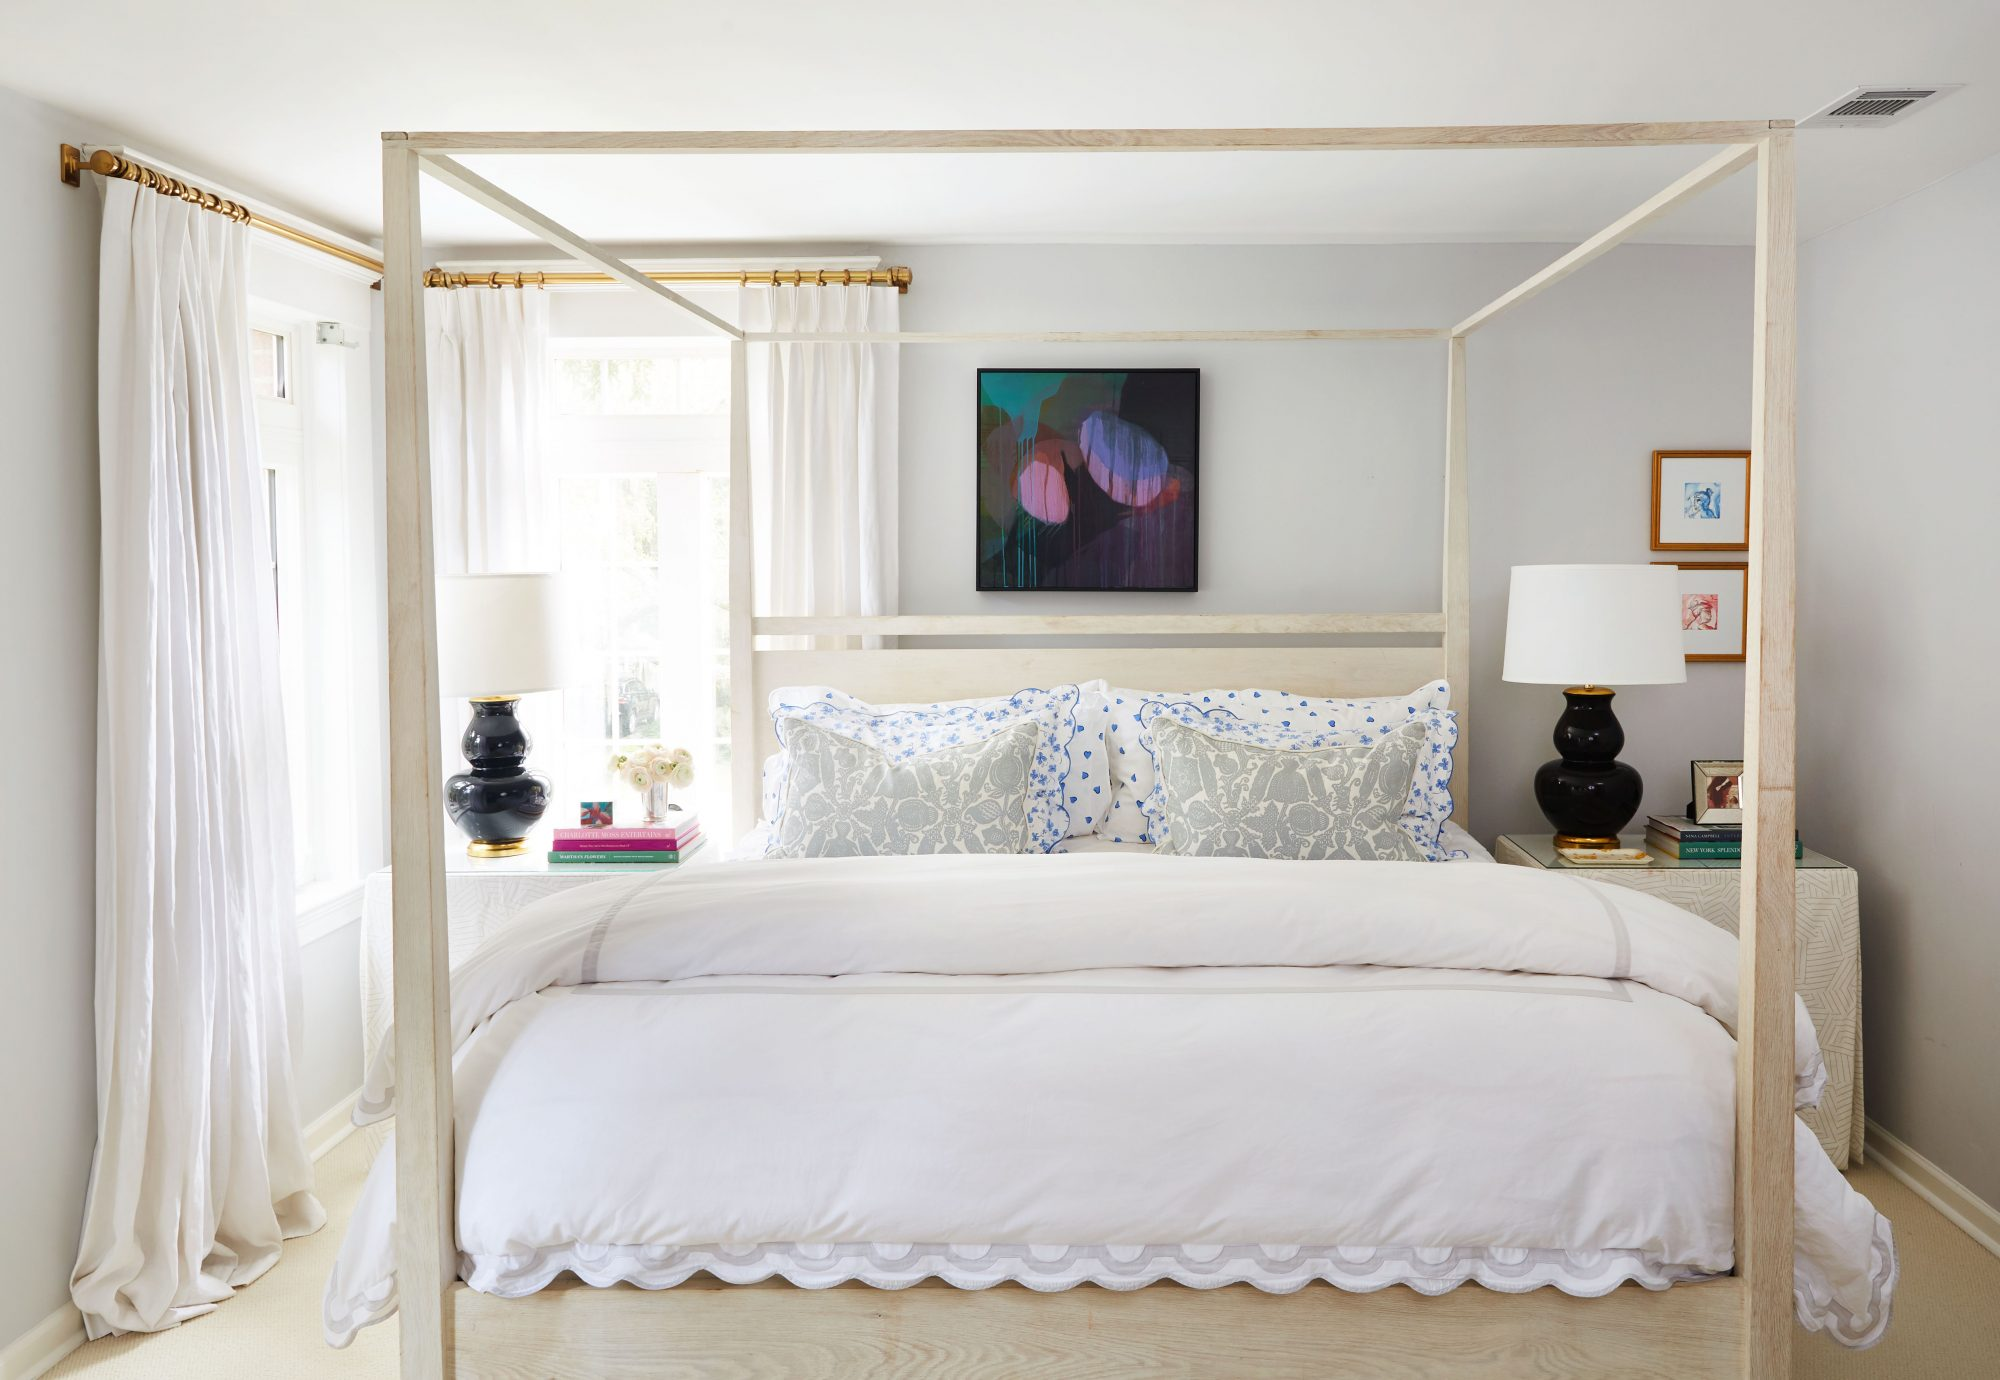 Main Bedroom with light blue walls and four poster bed with white linens